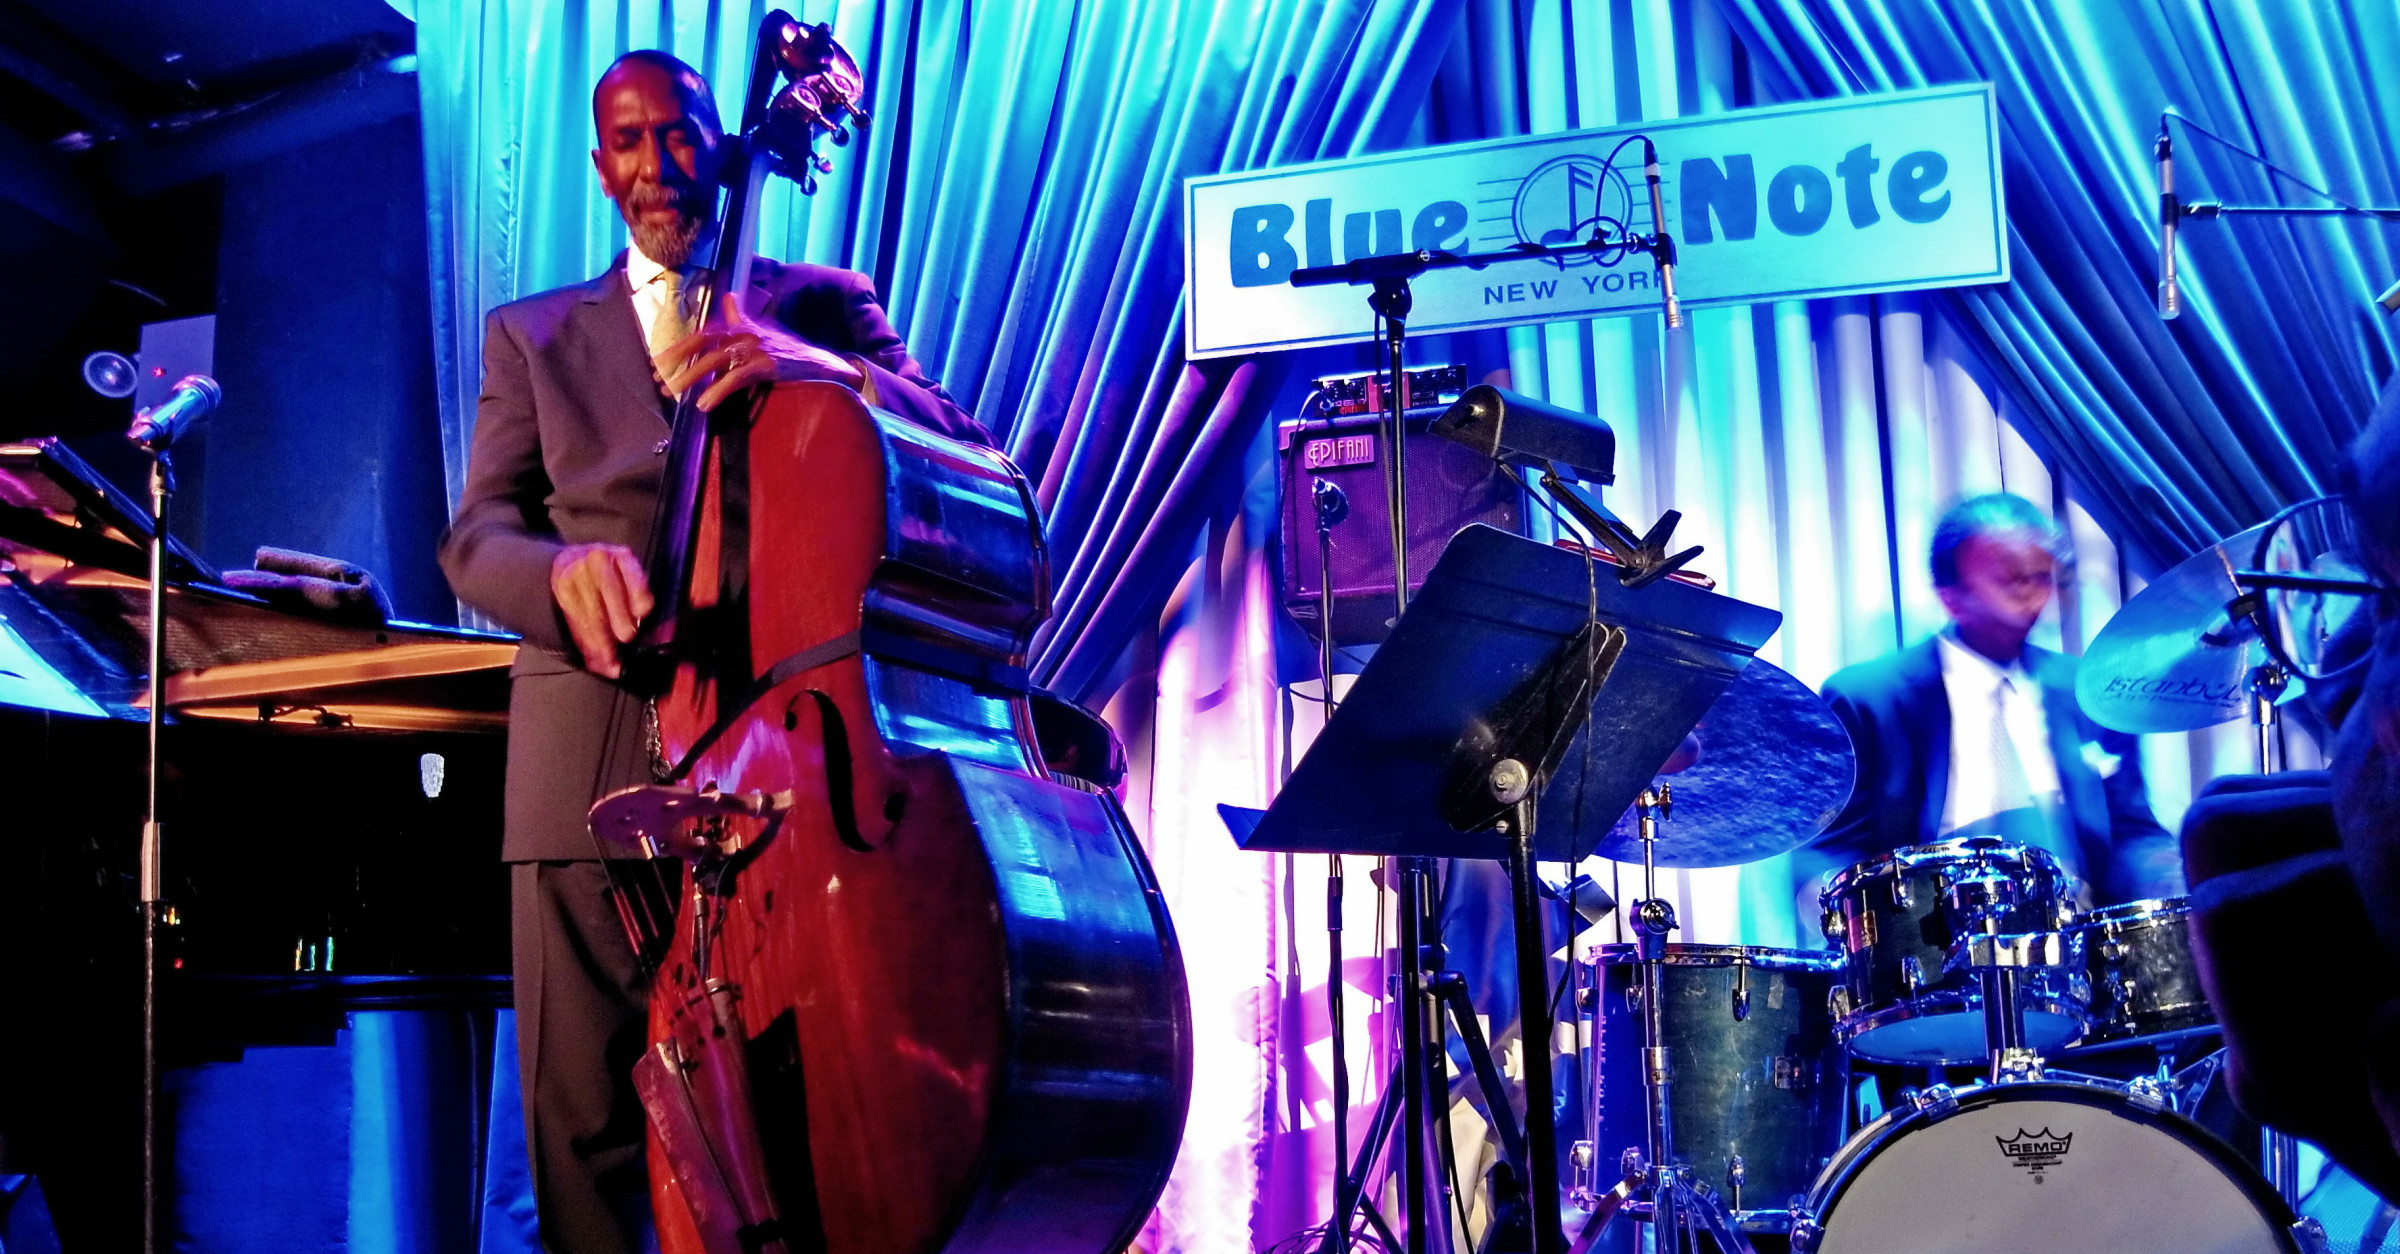 Blues and Jazz in New York City This Week - March 1-March 8